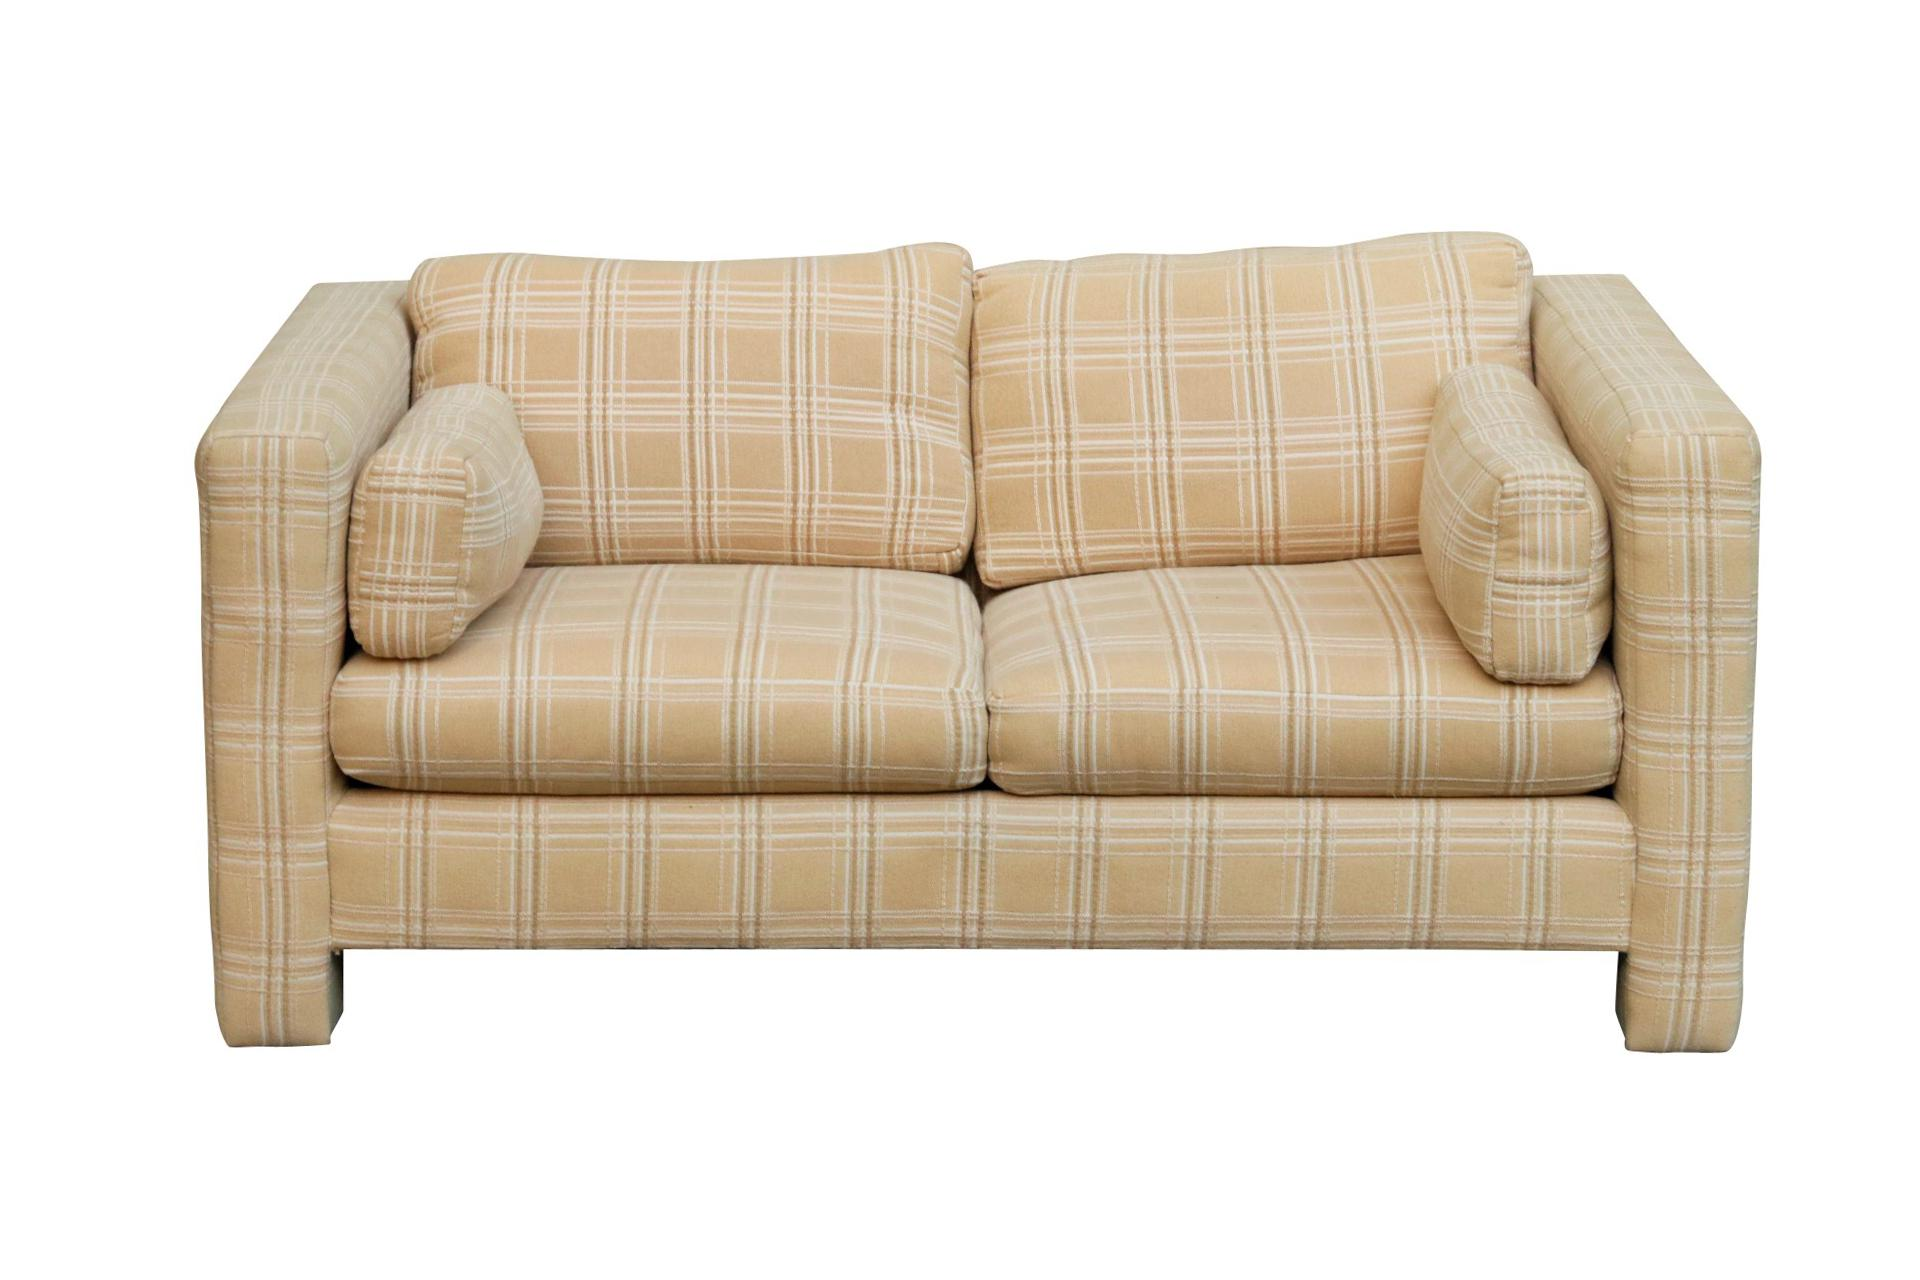 A Mid Century Modern Sofa Designed By Milo Baughman And Made By Thayer  Coggin, Upholstered